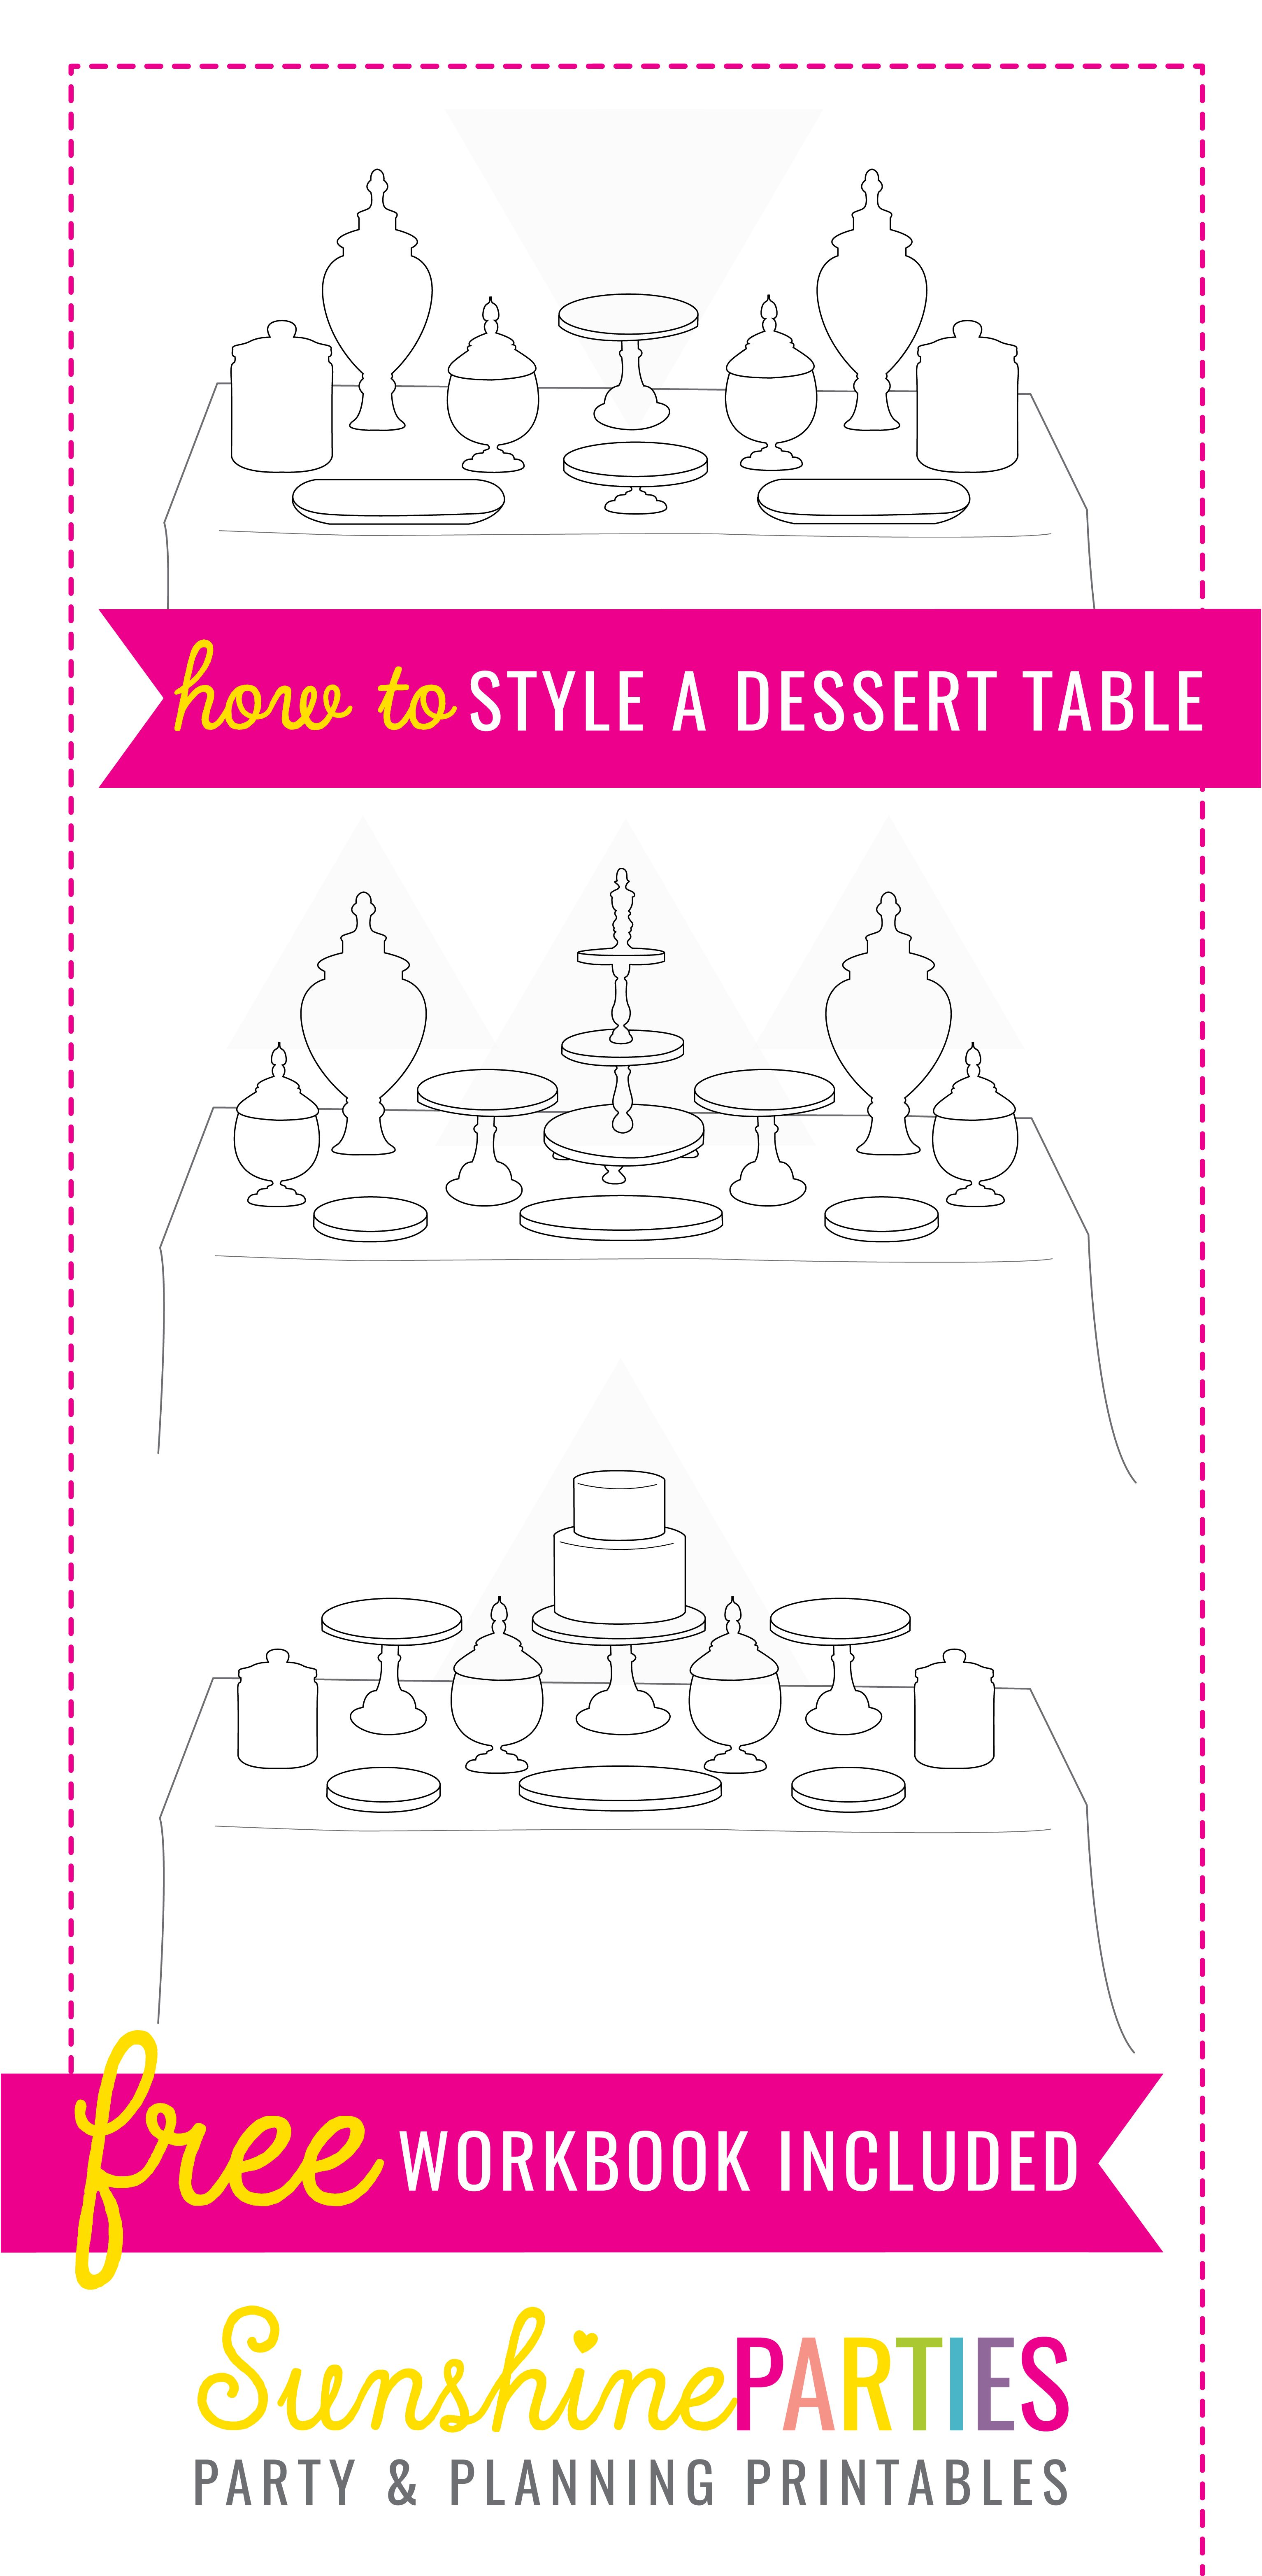 FREE PARTY TABLE SET-UP GUIDE | Free Printables & Instant Downloads ...